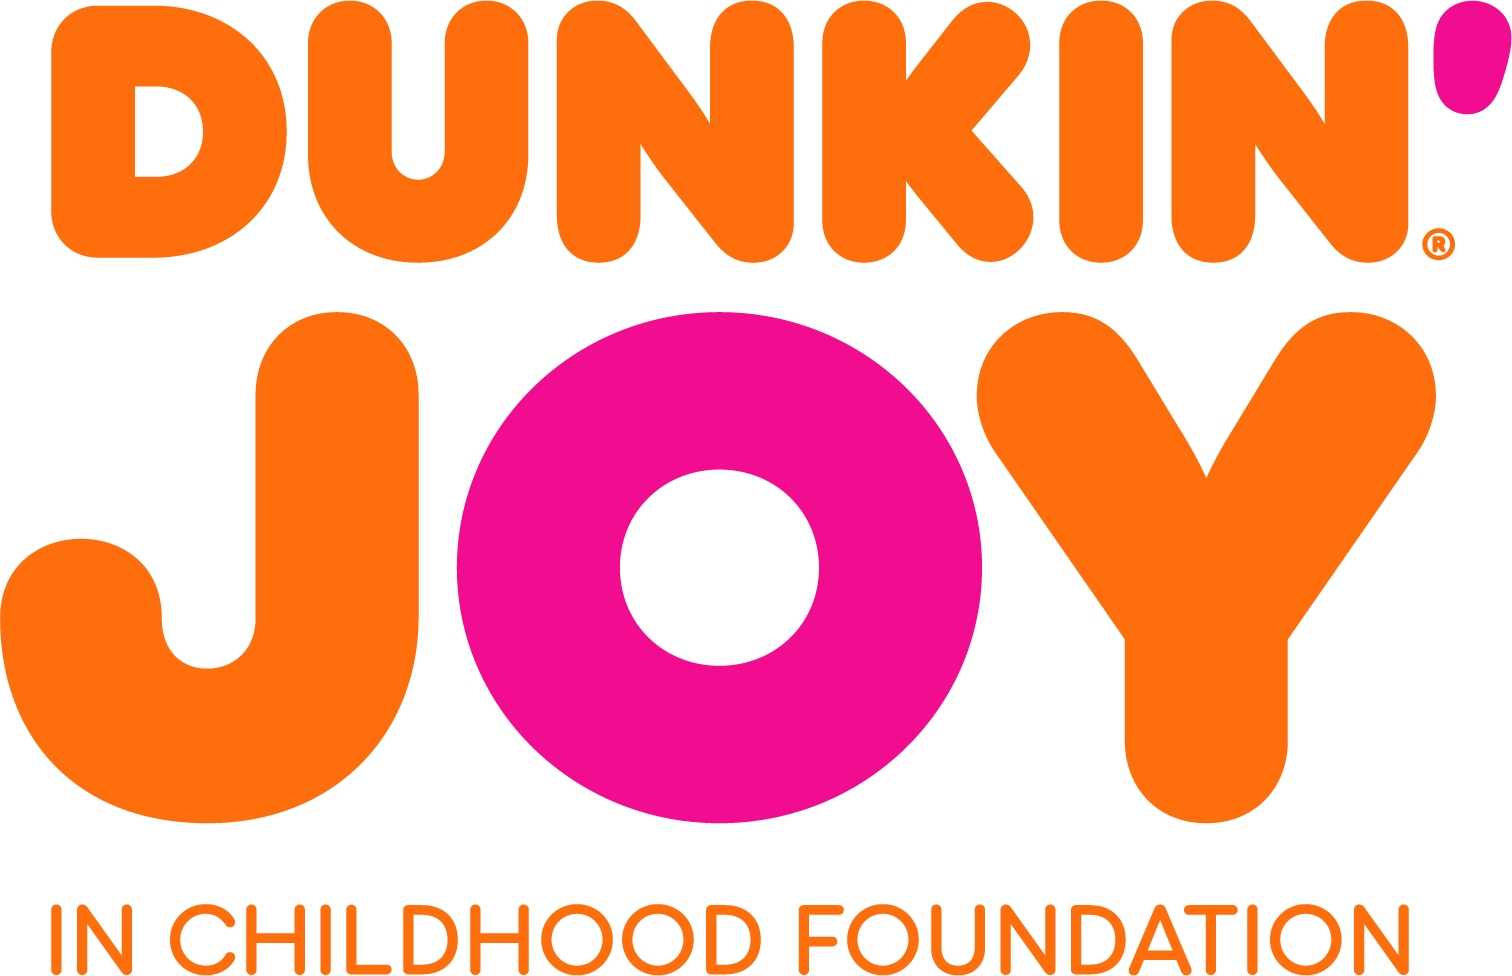 Dunkin' Joy in Childhood Foundation Activates $1.25MM in Emergency Funding for Coronavirus (COVID-19) Response